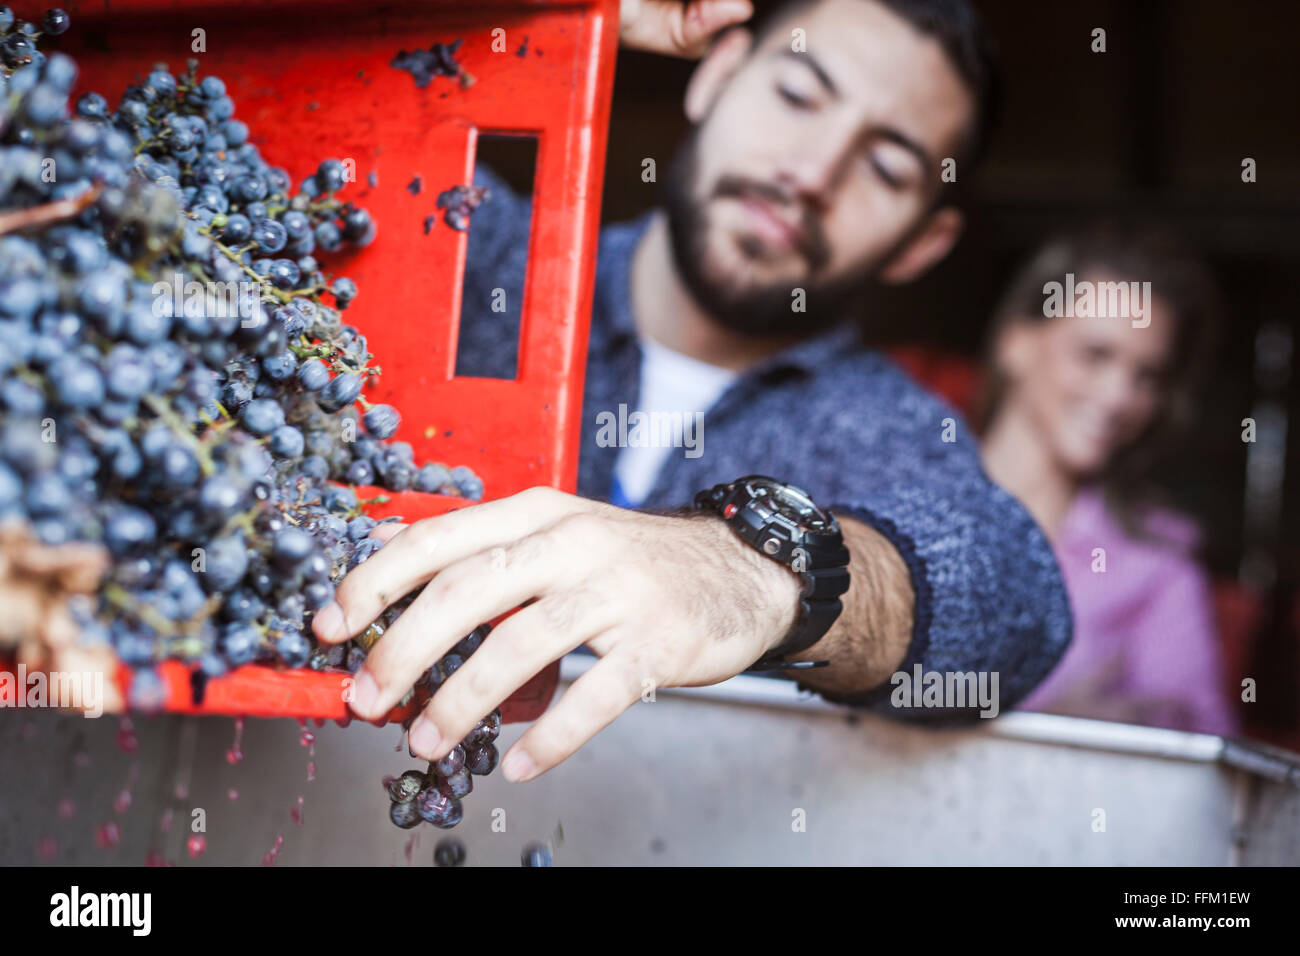 Man unloading grapes into container in vineyard - Stock Image